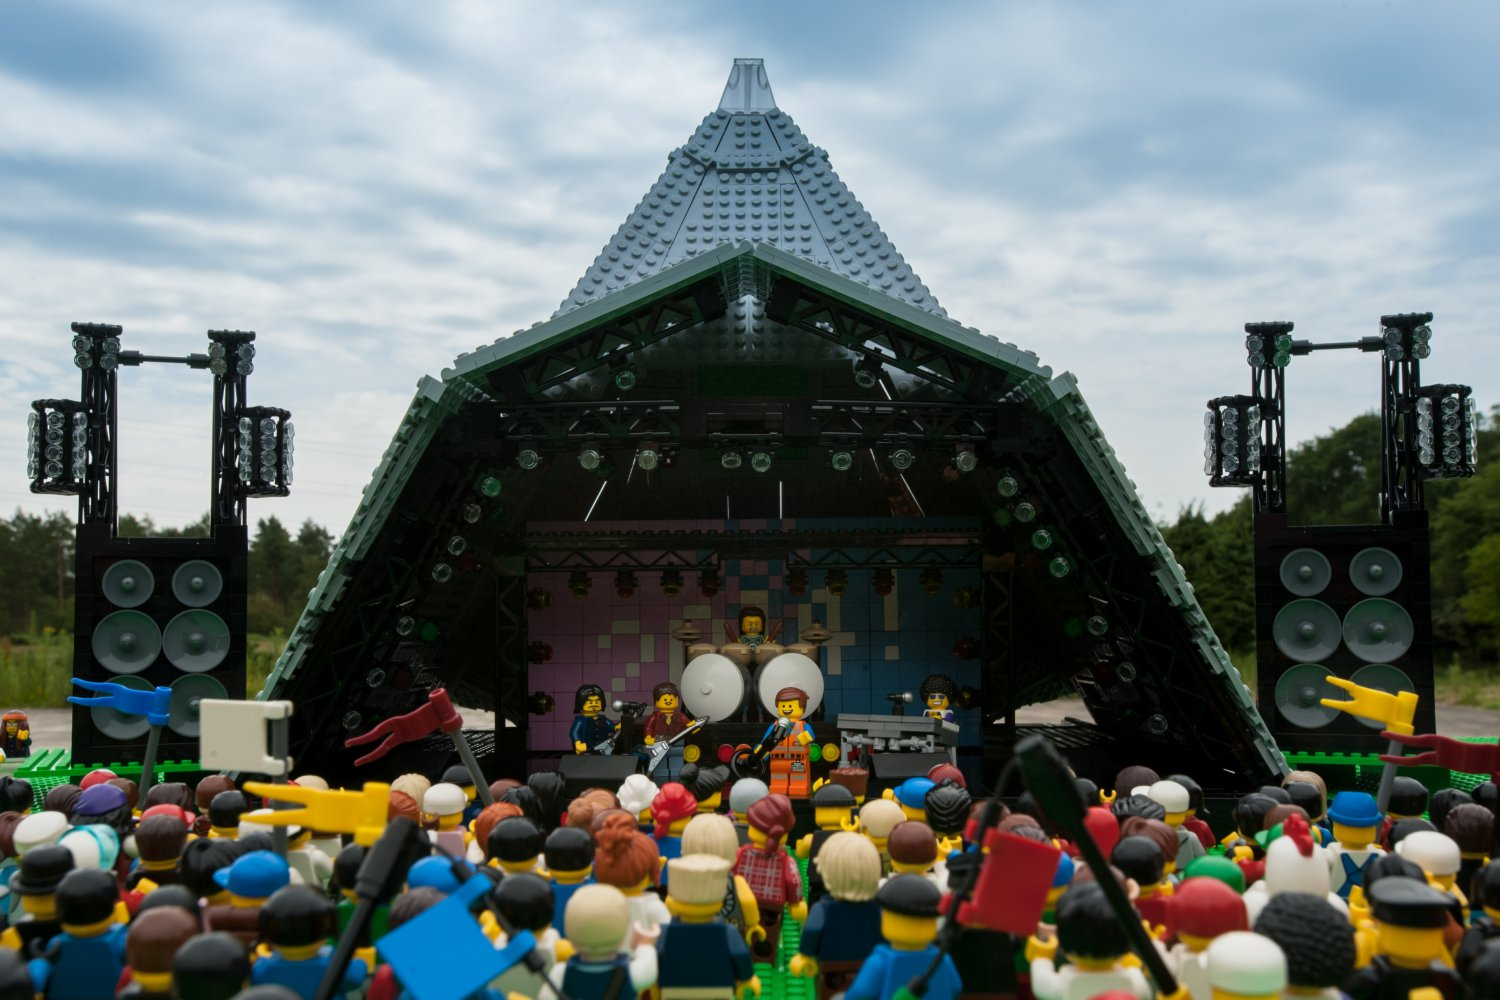 The mud didnt bother Emmet, star of The LEGO Movie, as he gets into the festival spirit at Glastonbury.